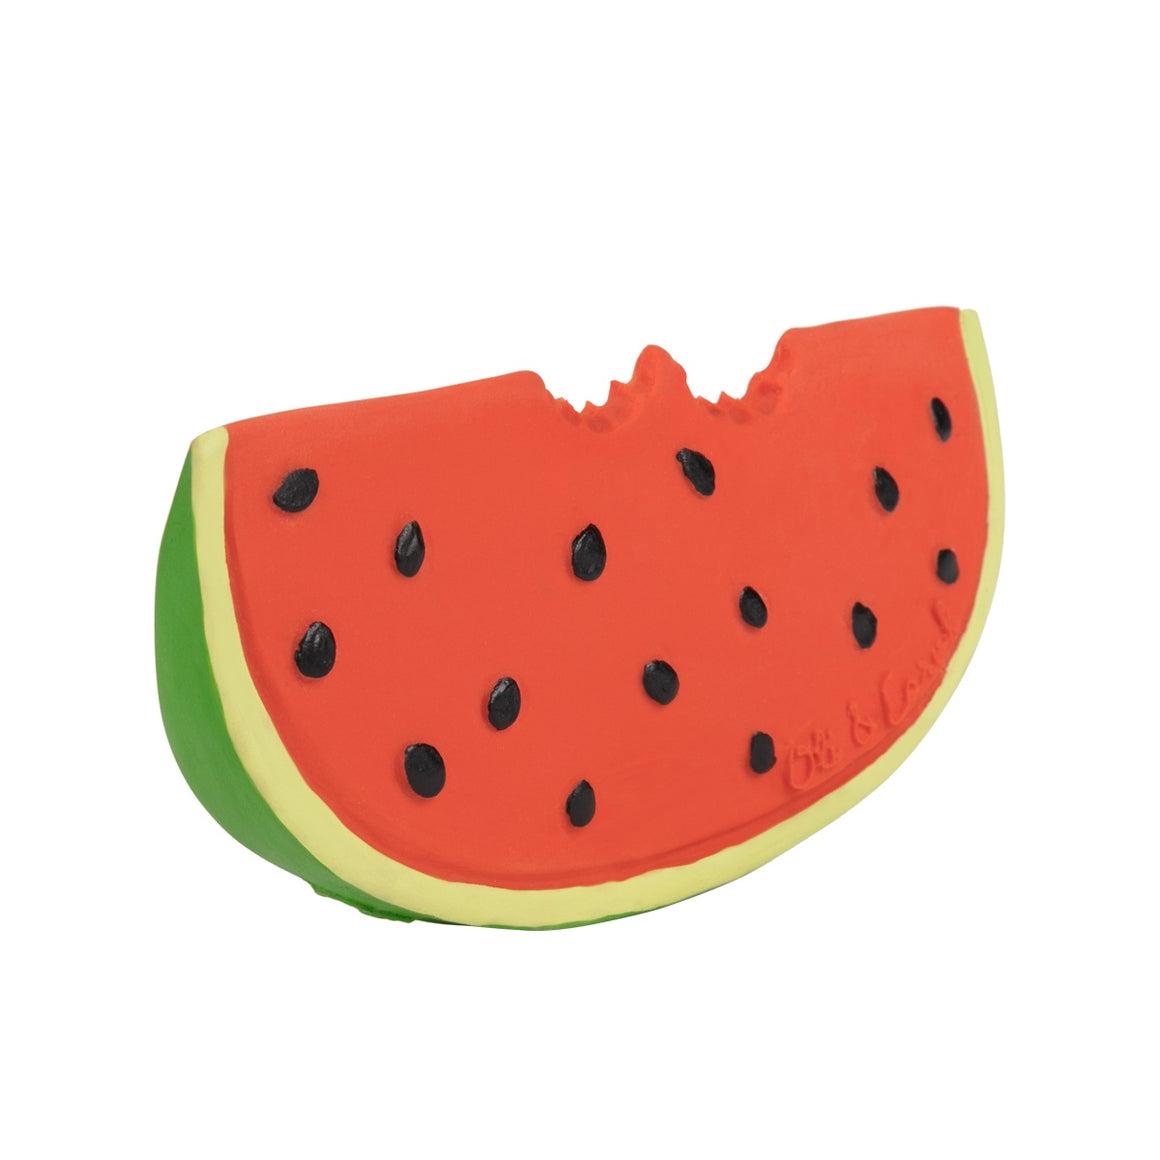 Oli & Carol Natural Rubber Teether, Wally the Watermelon